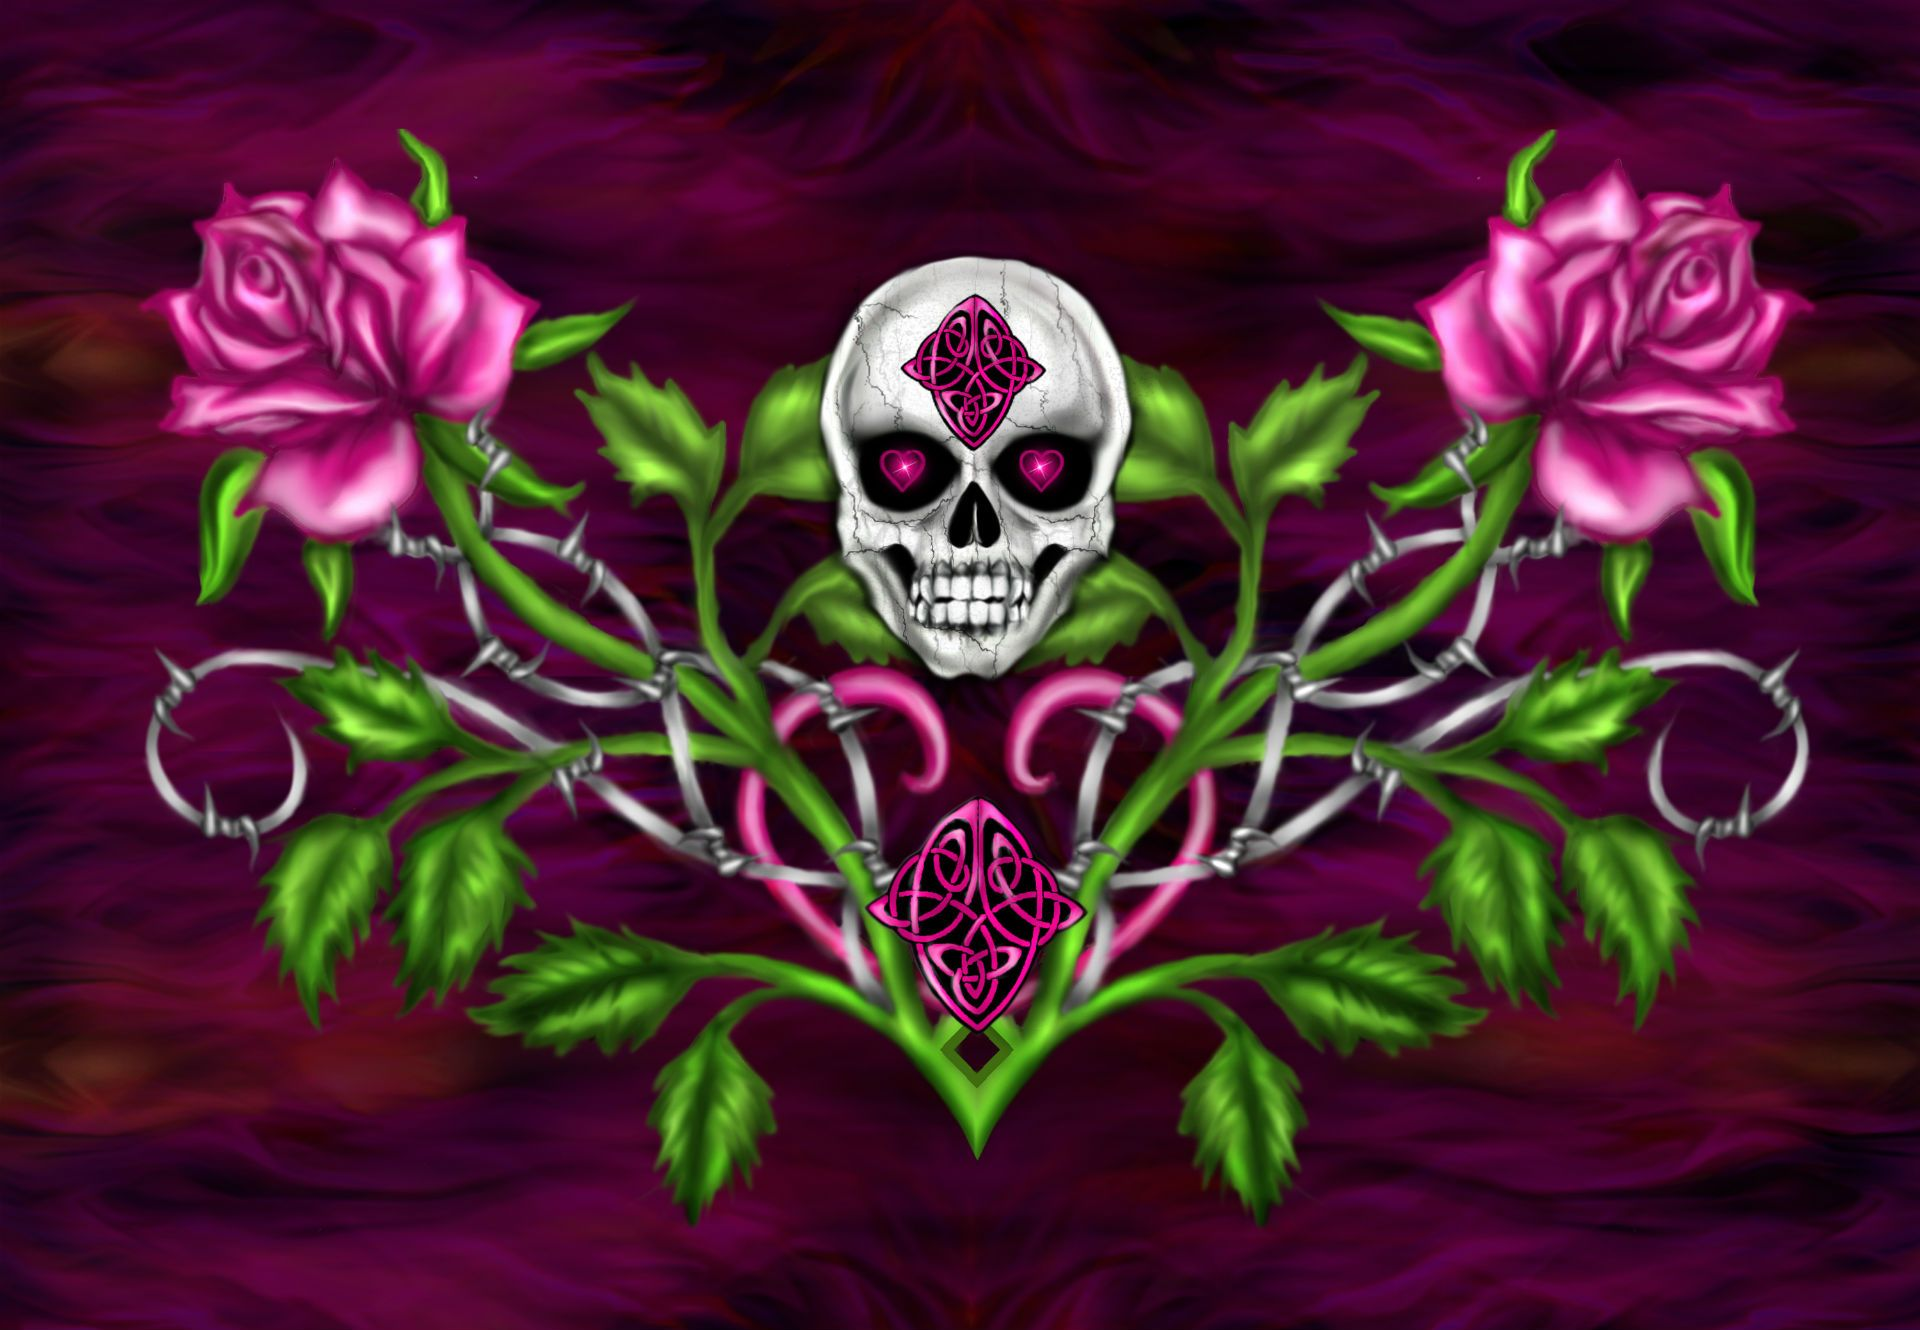 Gothic skull wallpapers   SF Wallpaper Gothic Skulls Wallpapers Group  61